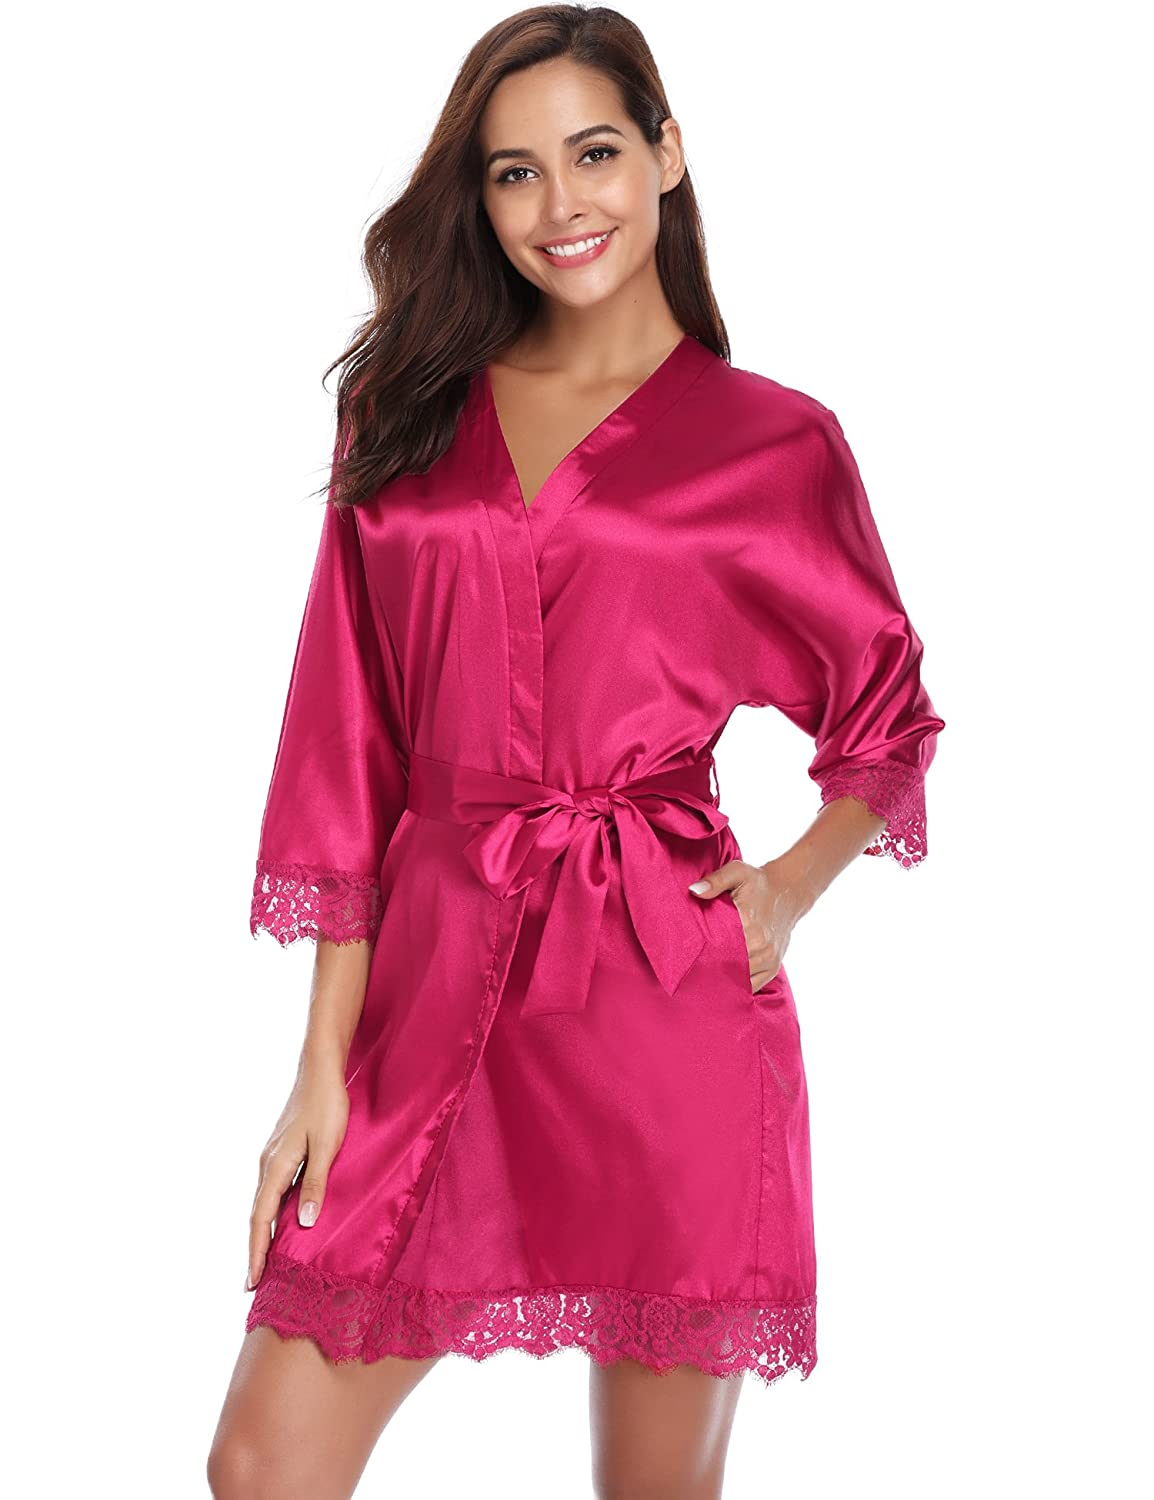 Aibrou Womens Robe, Satin Kimono 3/4 Sleeve Plain Nightwear Short Dressing Gown with Lace